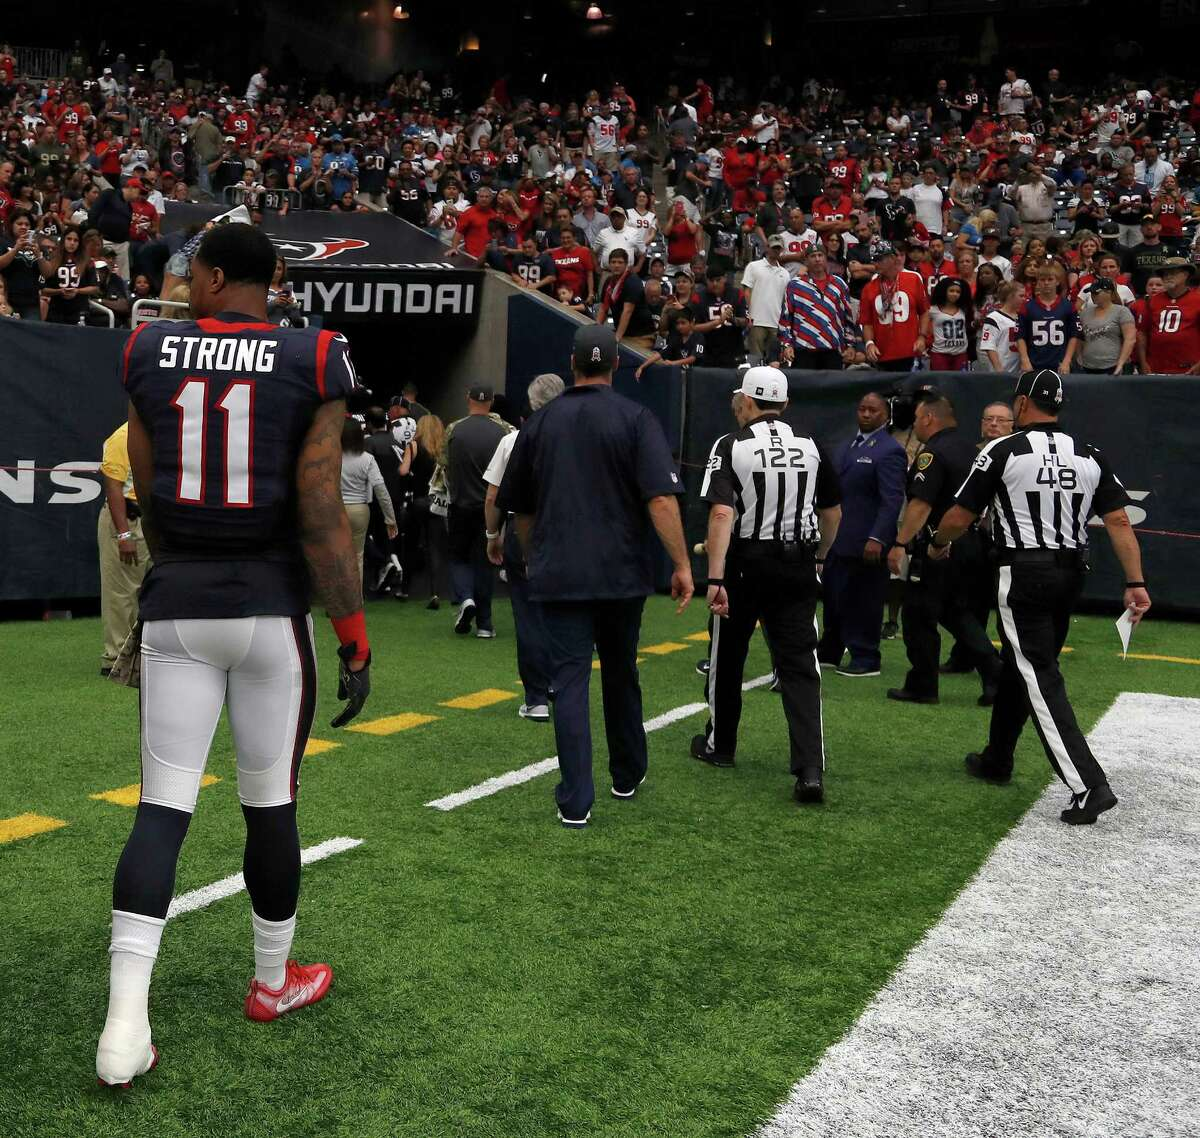 Houston Texans wide receiver Jaelen Strong (11) walks back to the locker room after an injury at the end of the second quarter an NFL football game at NRG Stadium, Sunday,Oct. 30, 2016 in Houston.